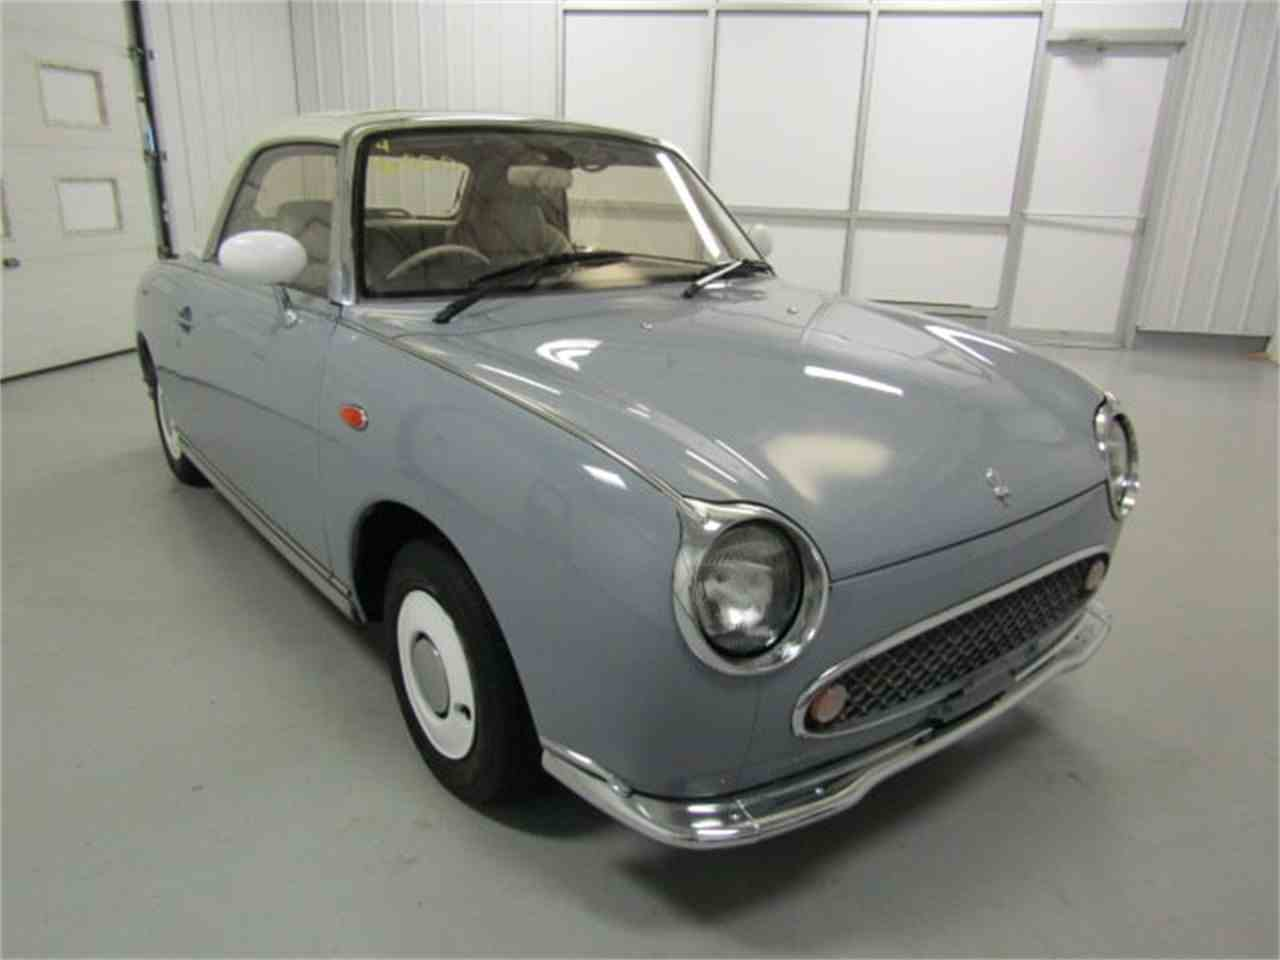 Large Picture of '91 Nissan Figaro located in Christiansburg Virginia - $16,900.00 - LI23